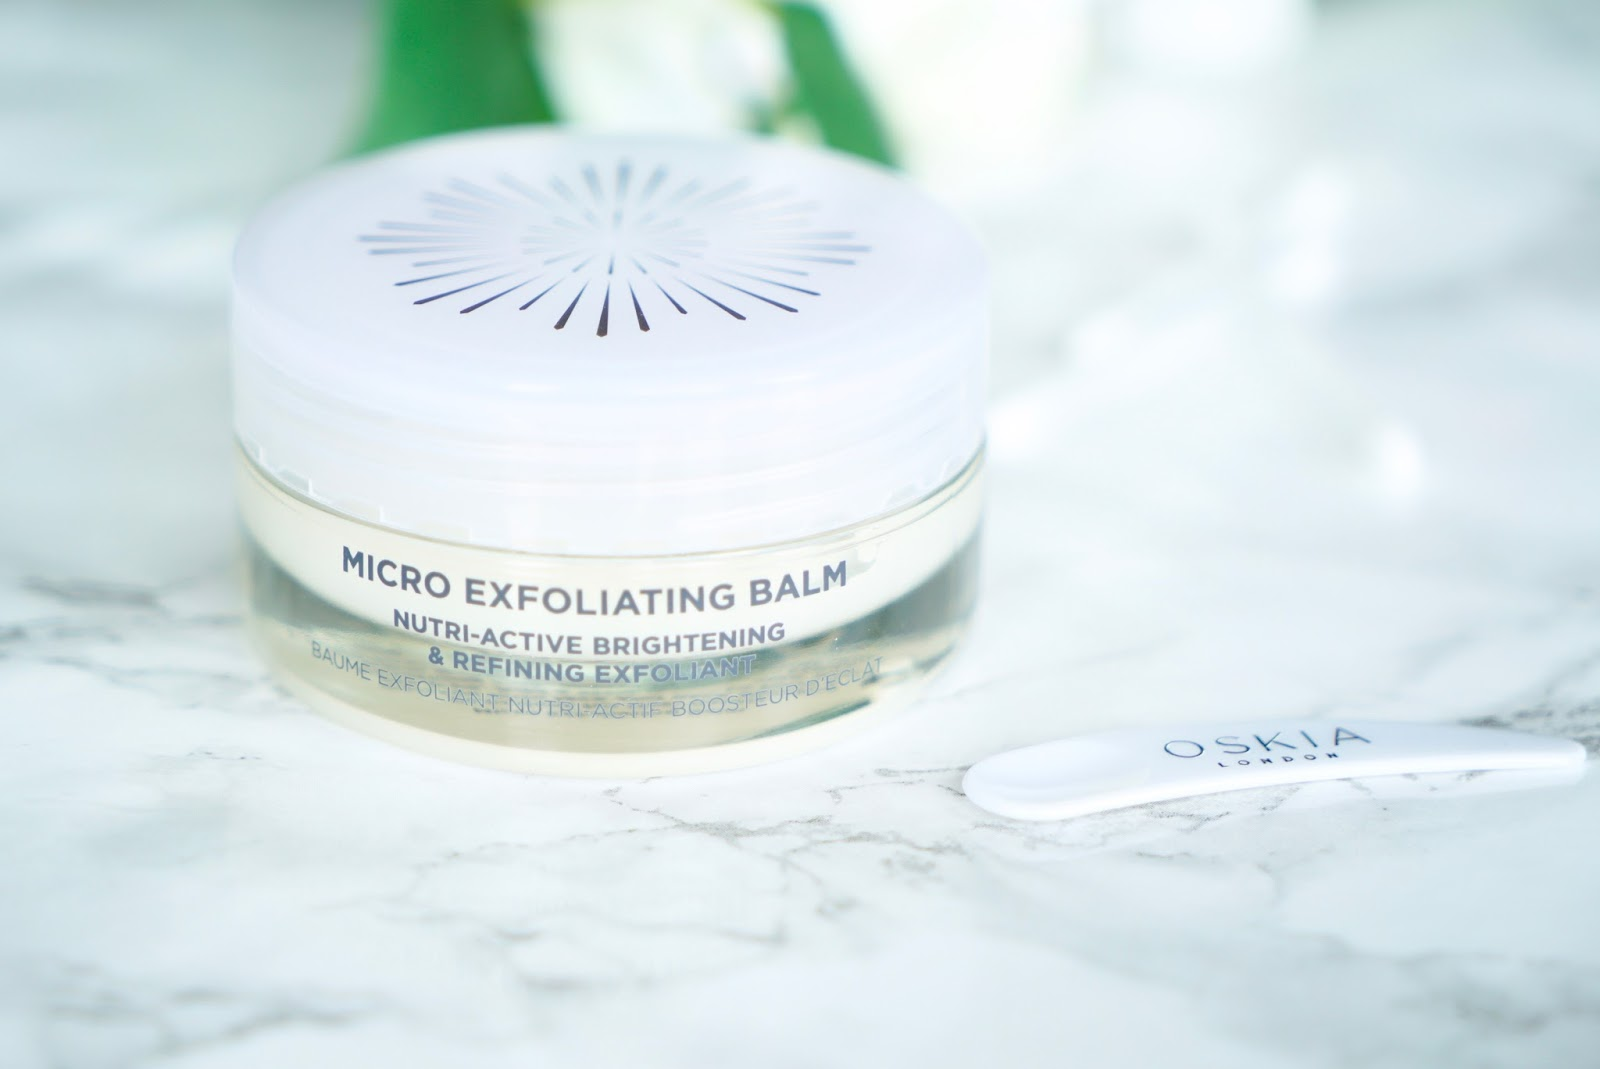 Oskia Micro Exfoliating balm review